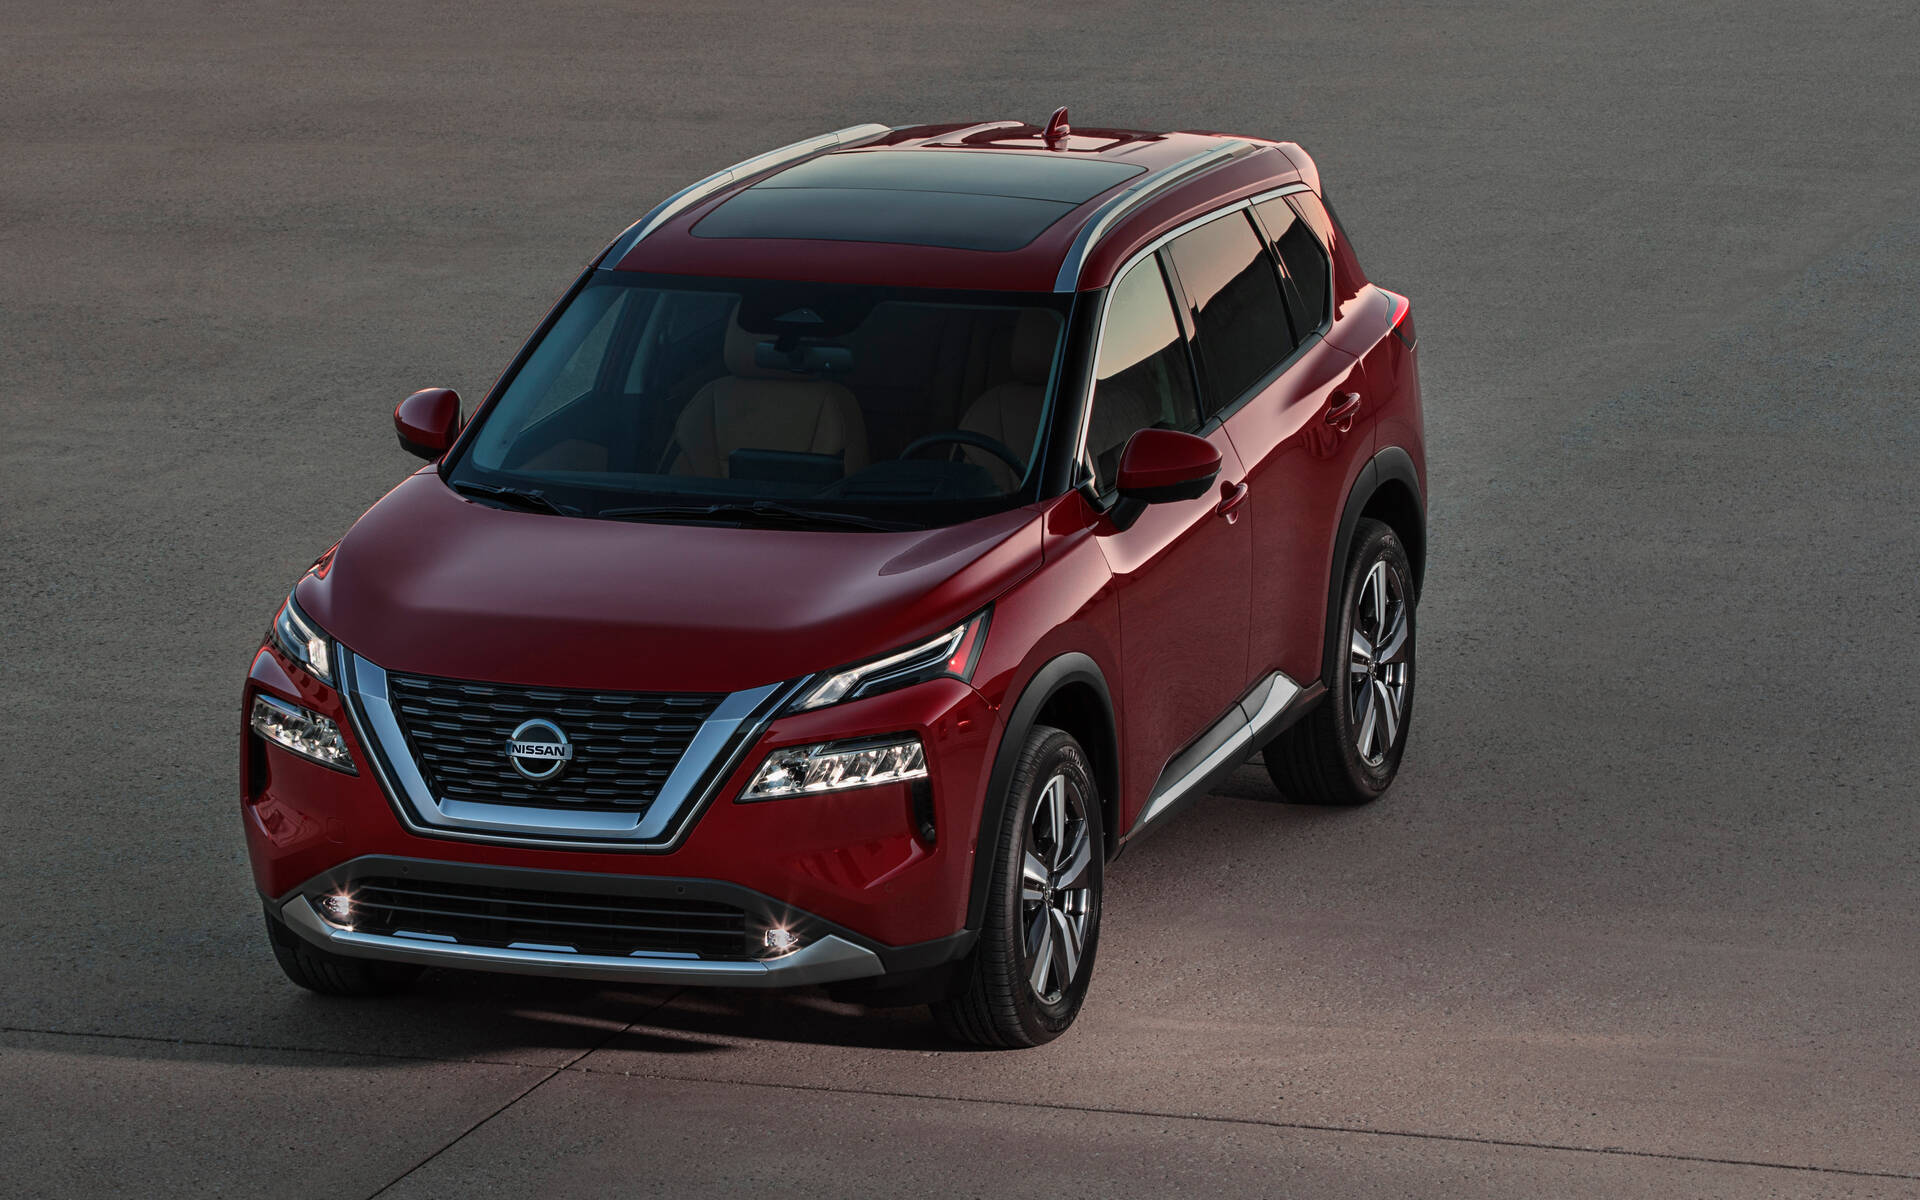 2021 Nissan Rogue: The Canadian Pricing Is Out - The Car Guide